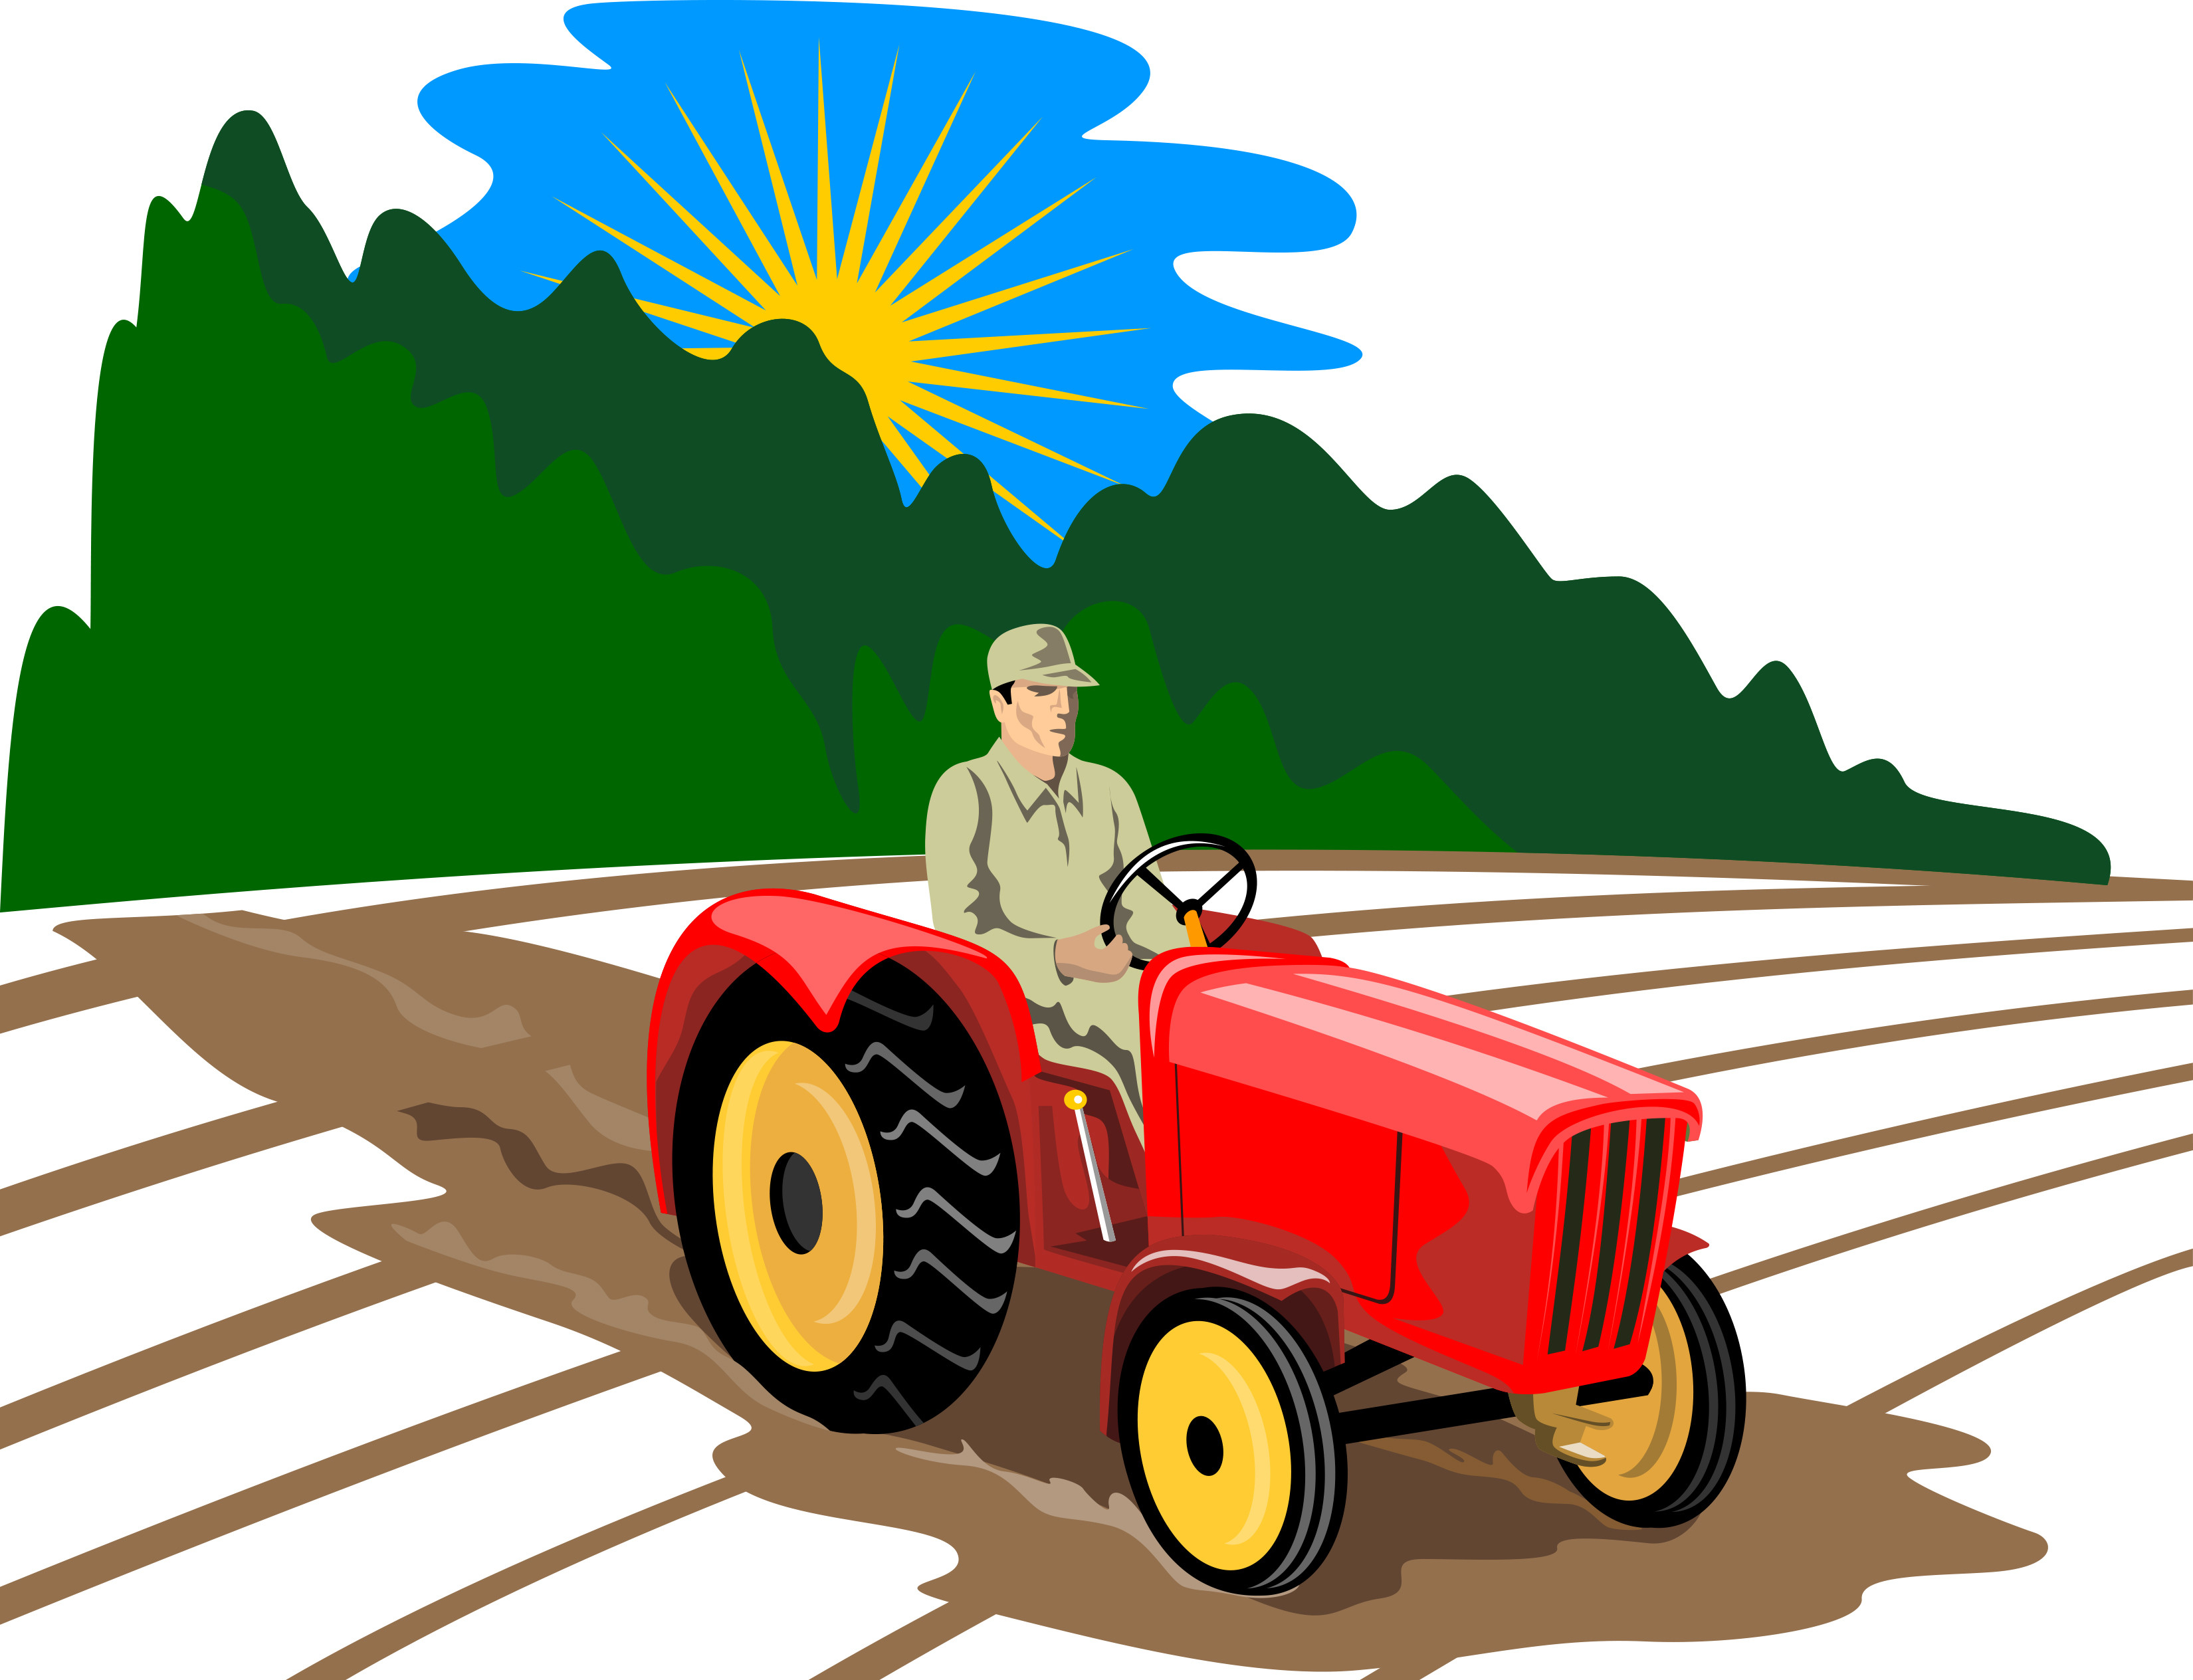 Tractor clipart tractor indian. Free images cartoon pictures